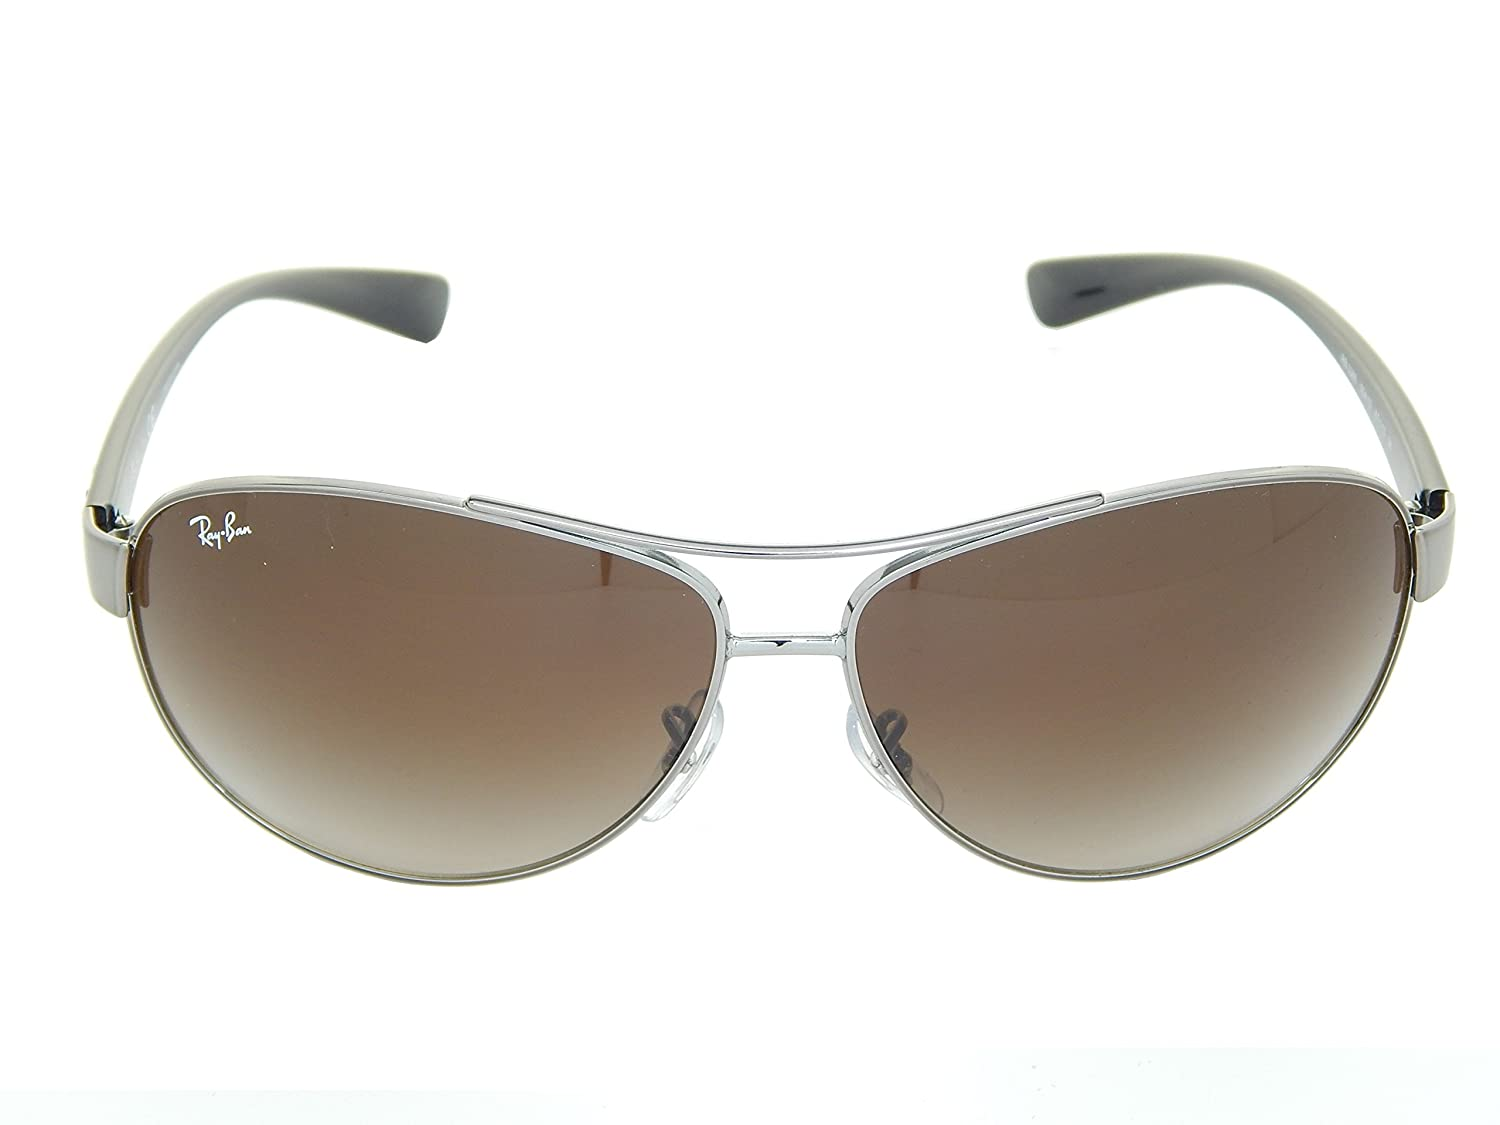 Ray Ban RB3386 004/13 Gunmetal/ Brown Gradient 67mm Sunglasses